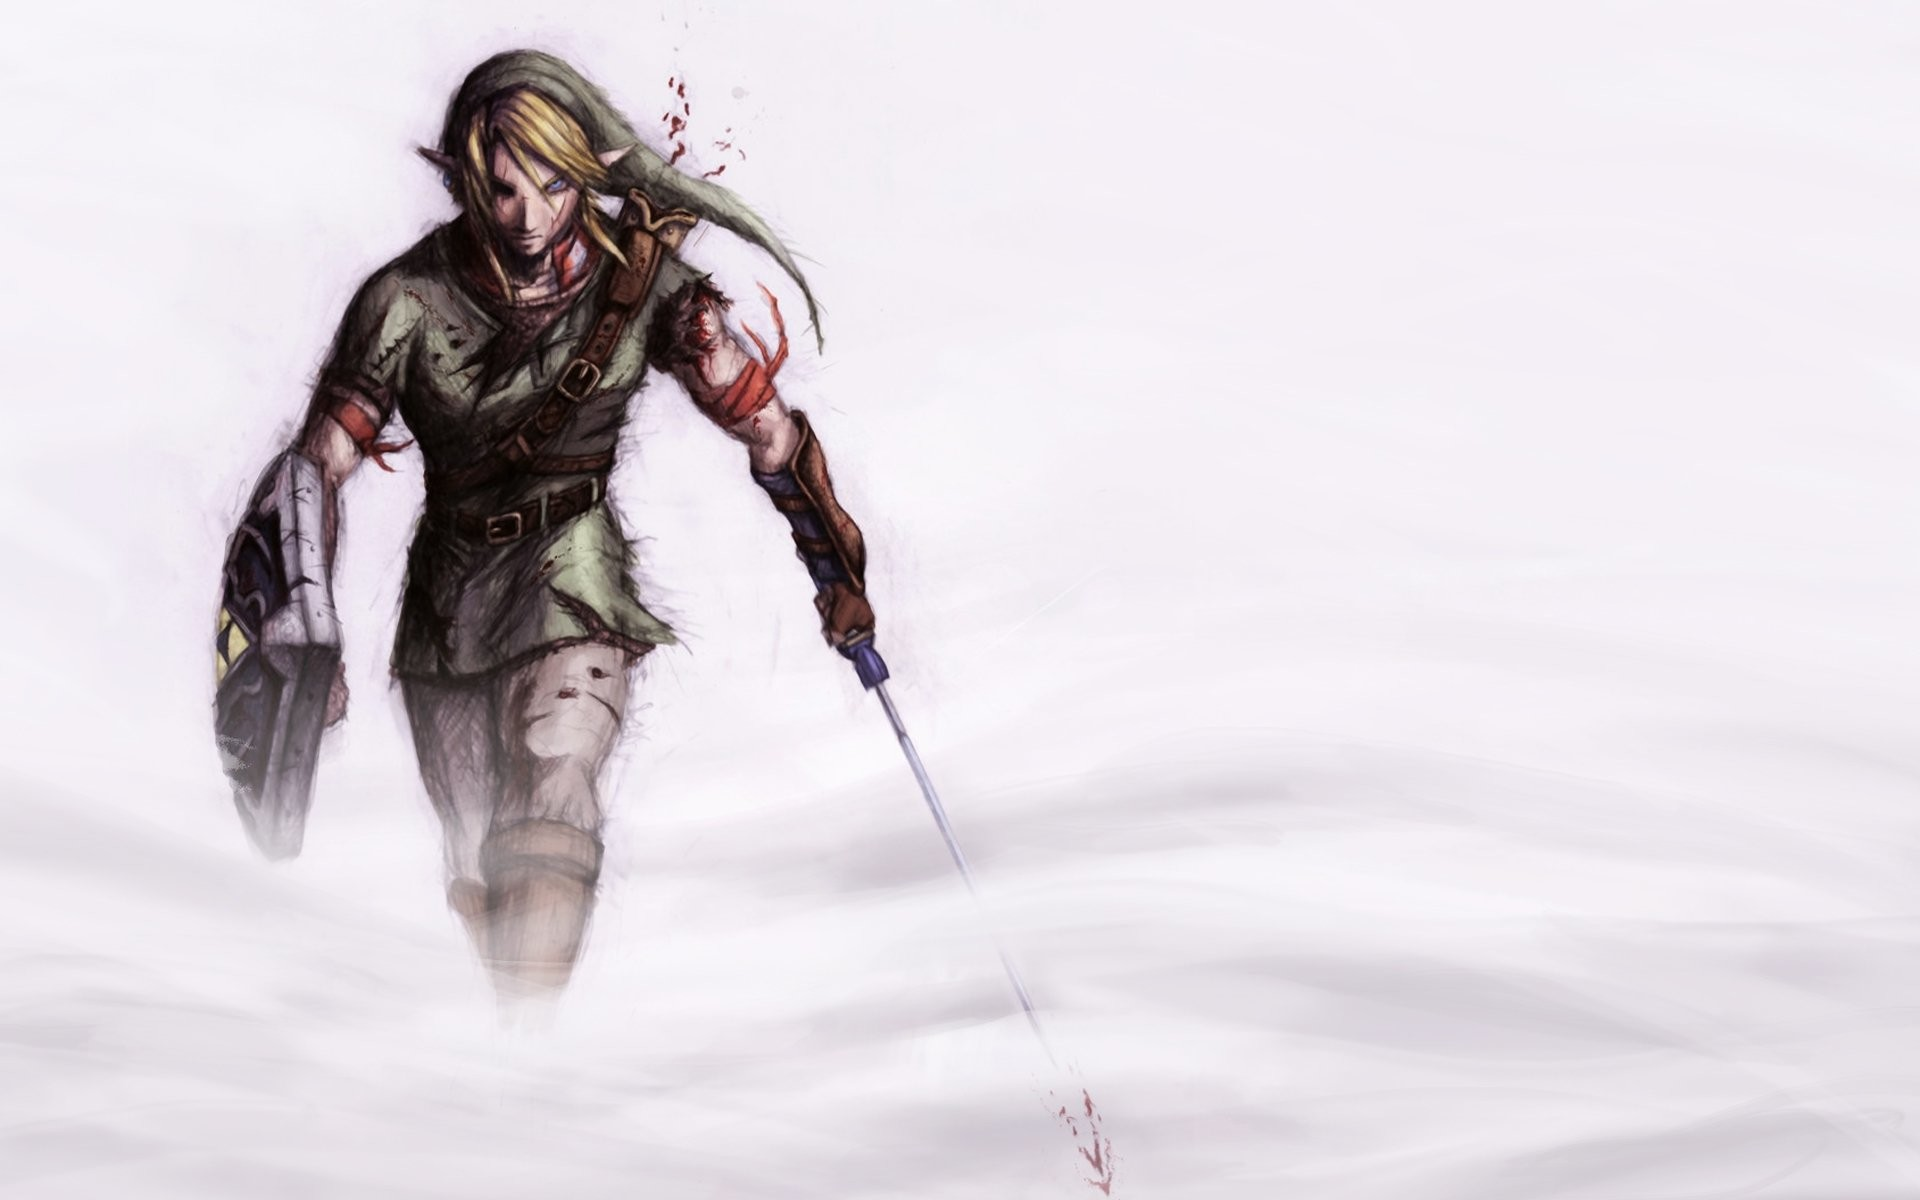 1920x1200 375 Zelda HD Wallpapers | Backgrounds - Wallpaper Abyss